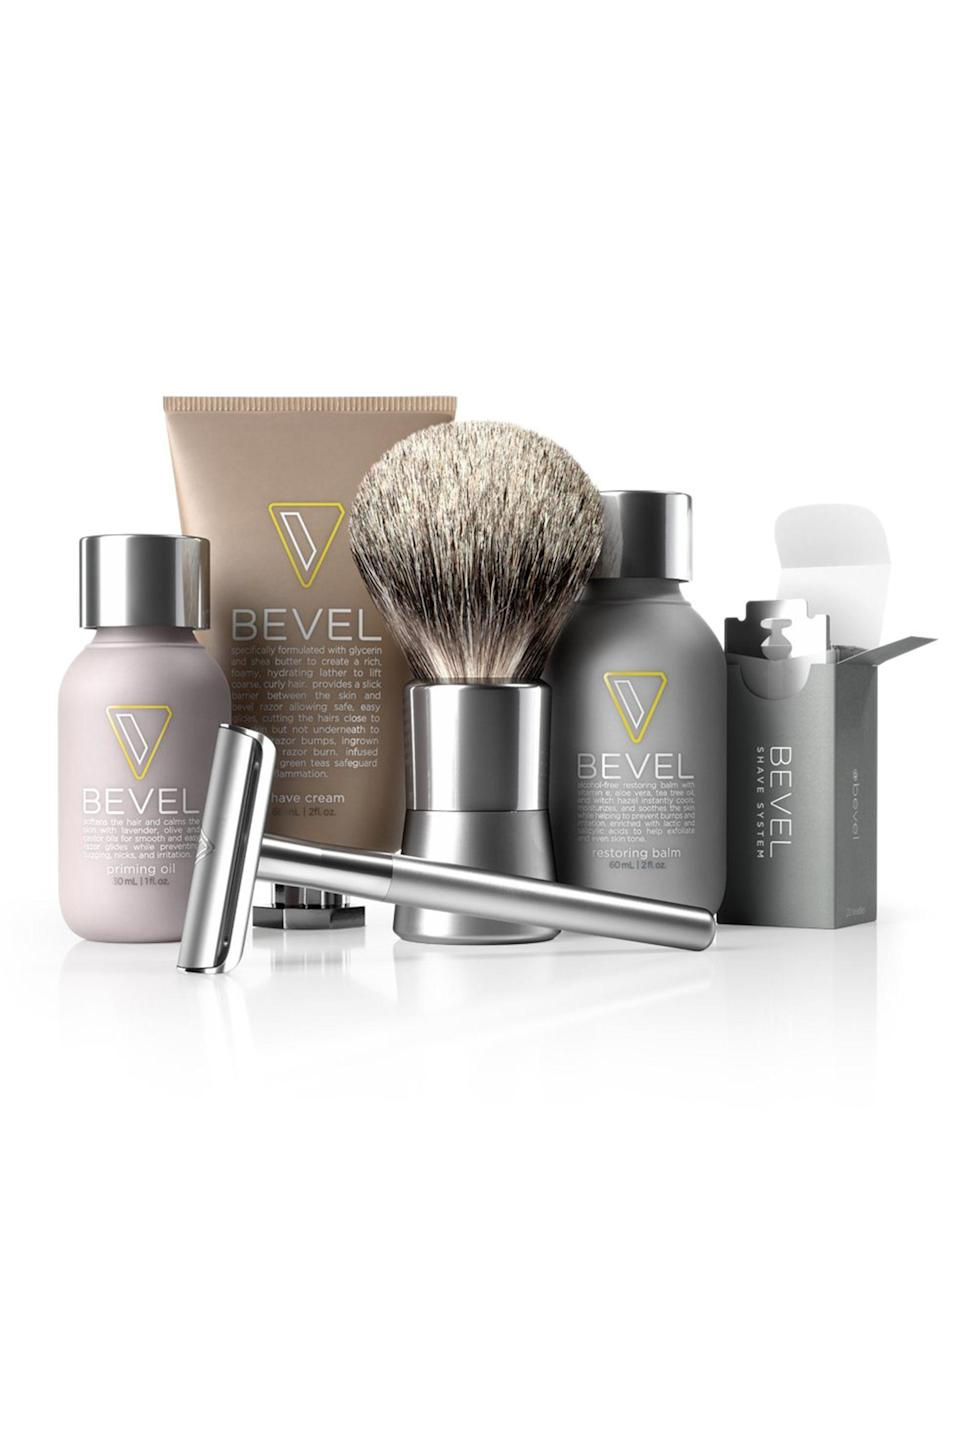 """<p><strong>Bevel</strong></p><p>amazon.com</p><p><strong>$89.99</strong></p><p><a href=""""https://www.amazon.com/dp/B00IT8K564?tag=syn-yahoo-20&ascsubtag=%5Bartid%7C10063.g.34824549%5Bsrc%7Cyahoo-us"""" rel=""""nofollow noopener"""" target=""""_blank"""" data-ylk=""""slk:Shop Now"""" class=""""link rapid-noclick-resp"""">Shop Now</a></p><p>Intro him to his new favorite grooming brand with a set that includes everything from a shave brush to priming oil to a safety razor and more. This shaving kit boasts over 400 reviews, with several mentioning how Bevel's products help prevent razor bumps. </p>"""